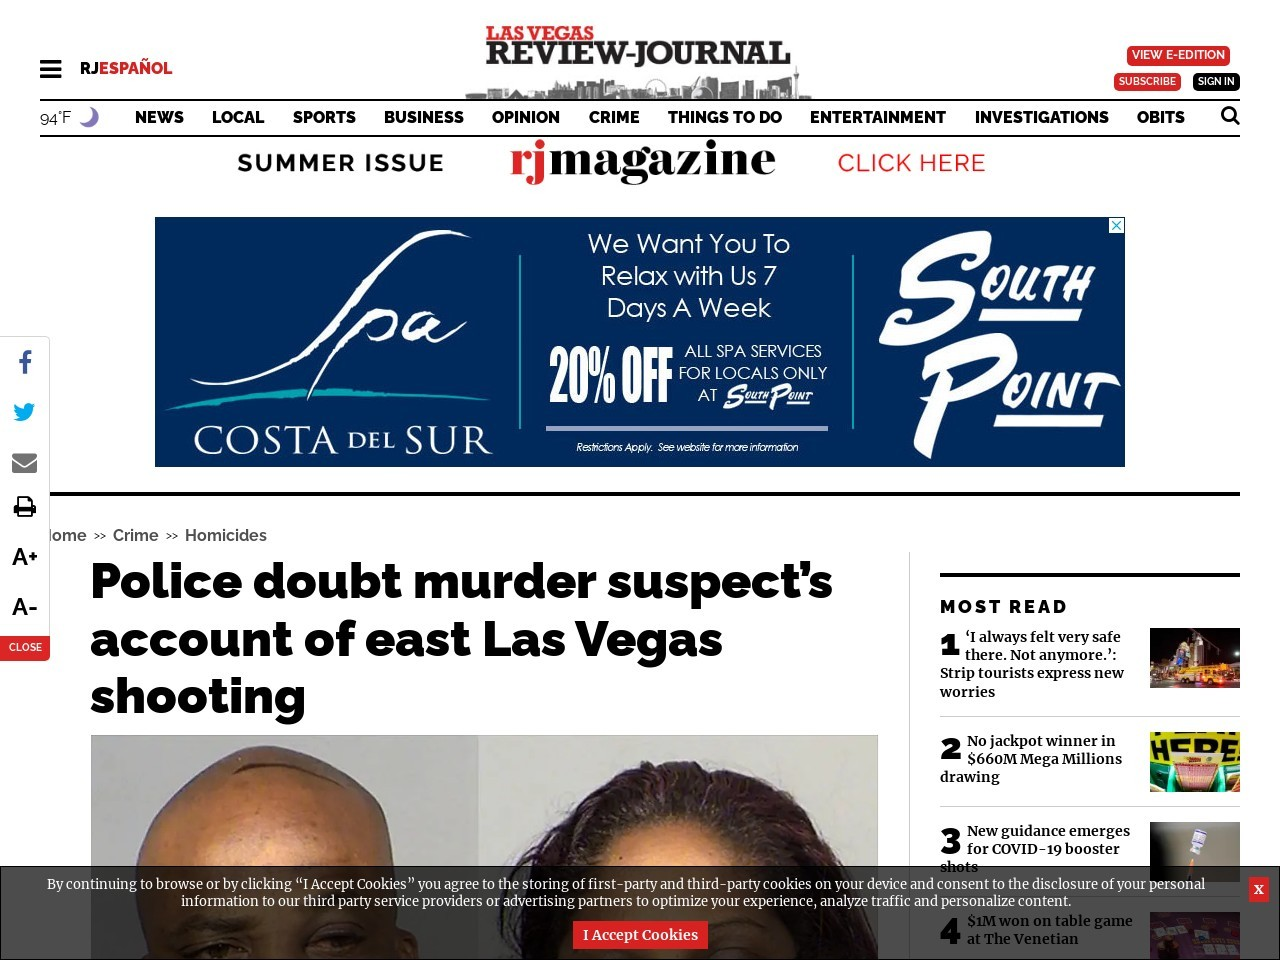 Police doubt murder suspect's account of east Las Vegas shooting